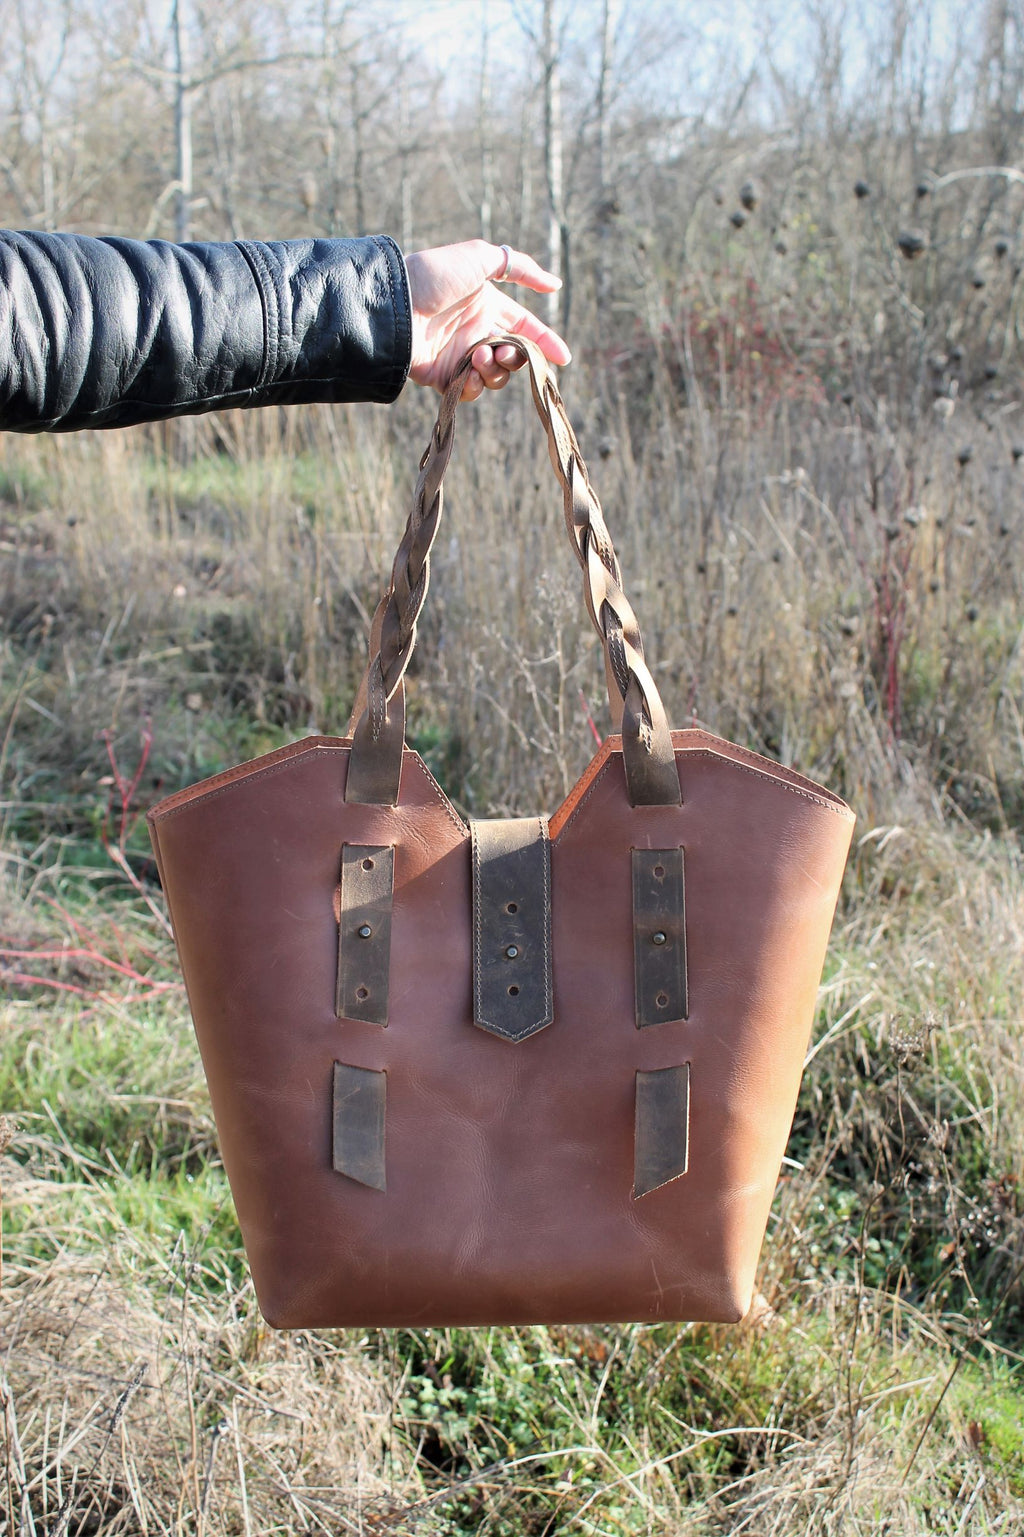 Handmade Large Saddle Tan Leather Tote Bag with Braided Straps - Available in Sable, Saddle Tan, Saddle Brown, Distressed Brown, Chocolate Brown or Burgundy